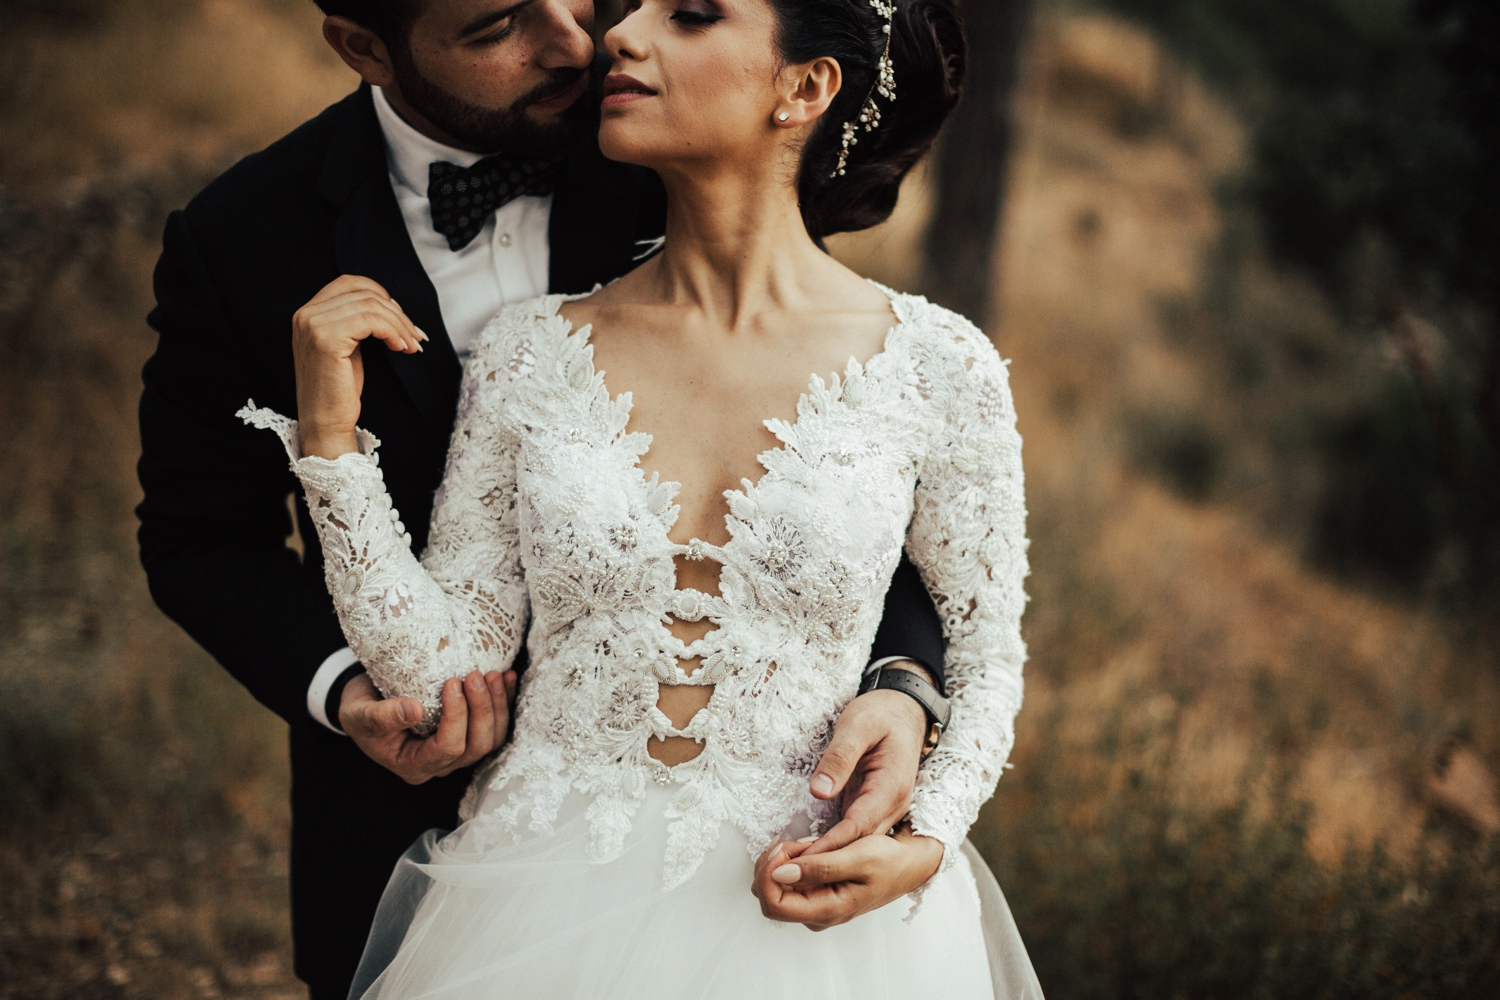 Wedding Day Lebanon Ramzi and Sahar by SUEGRAPHY0266.JPG